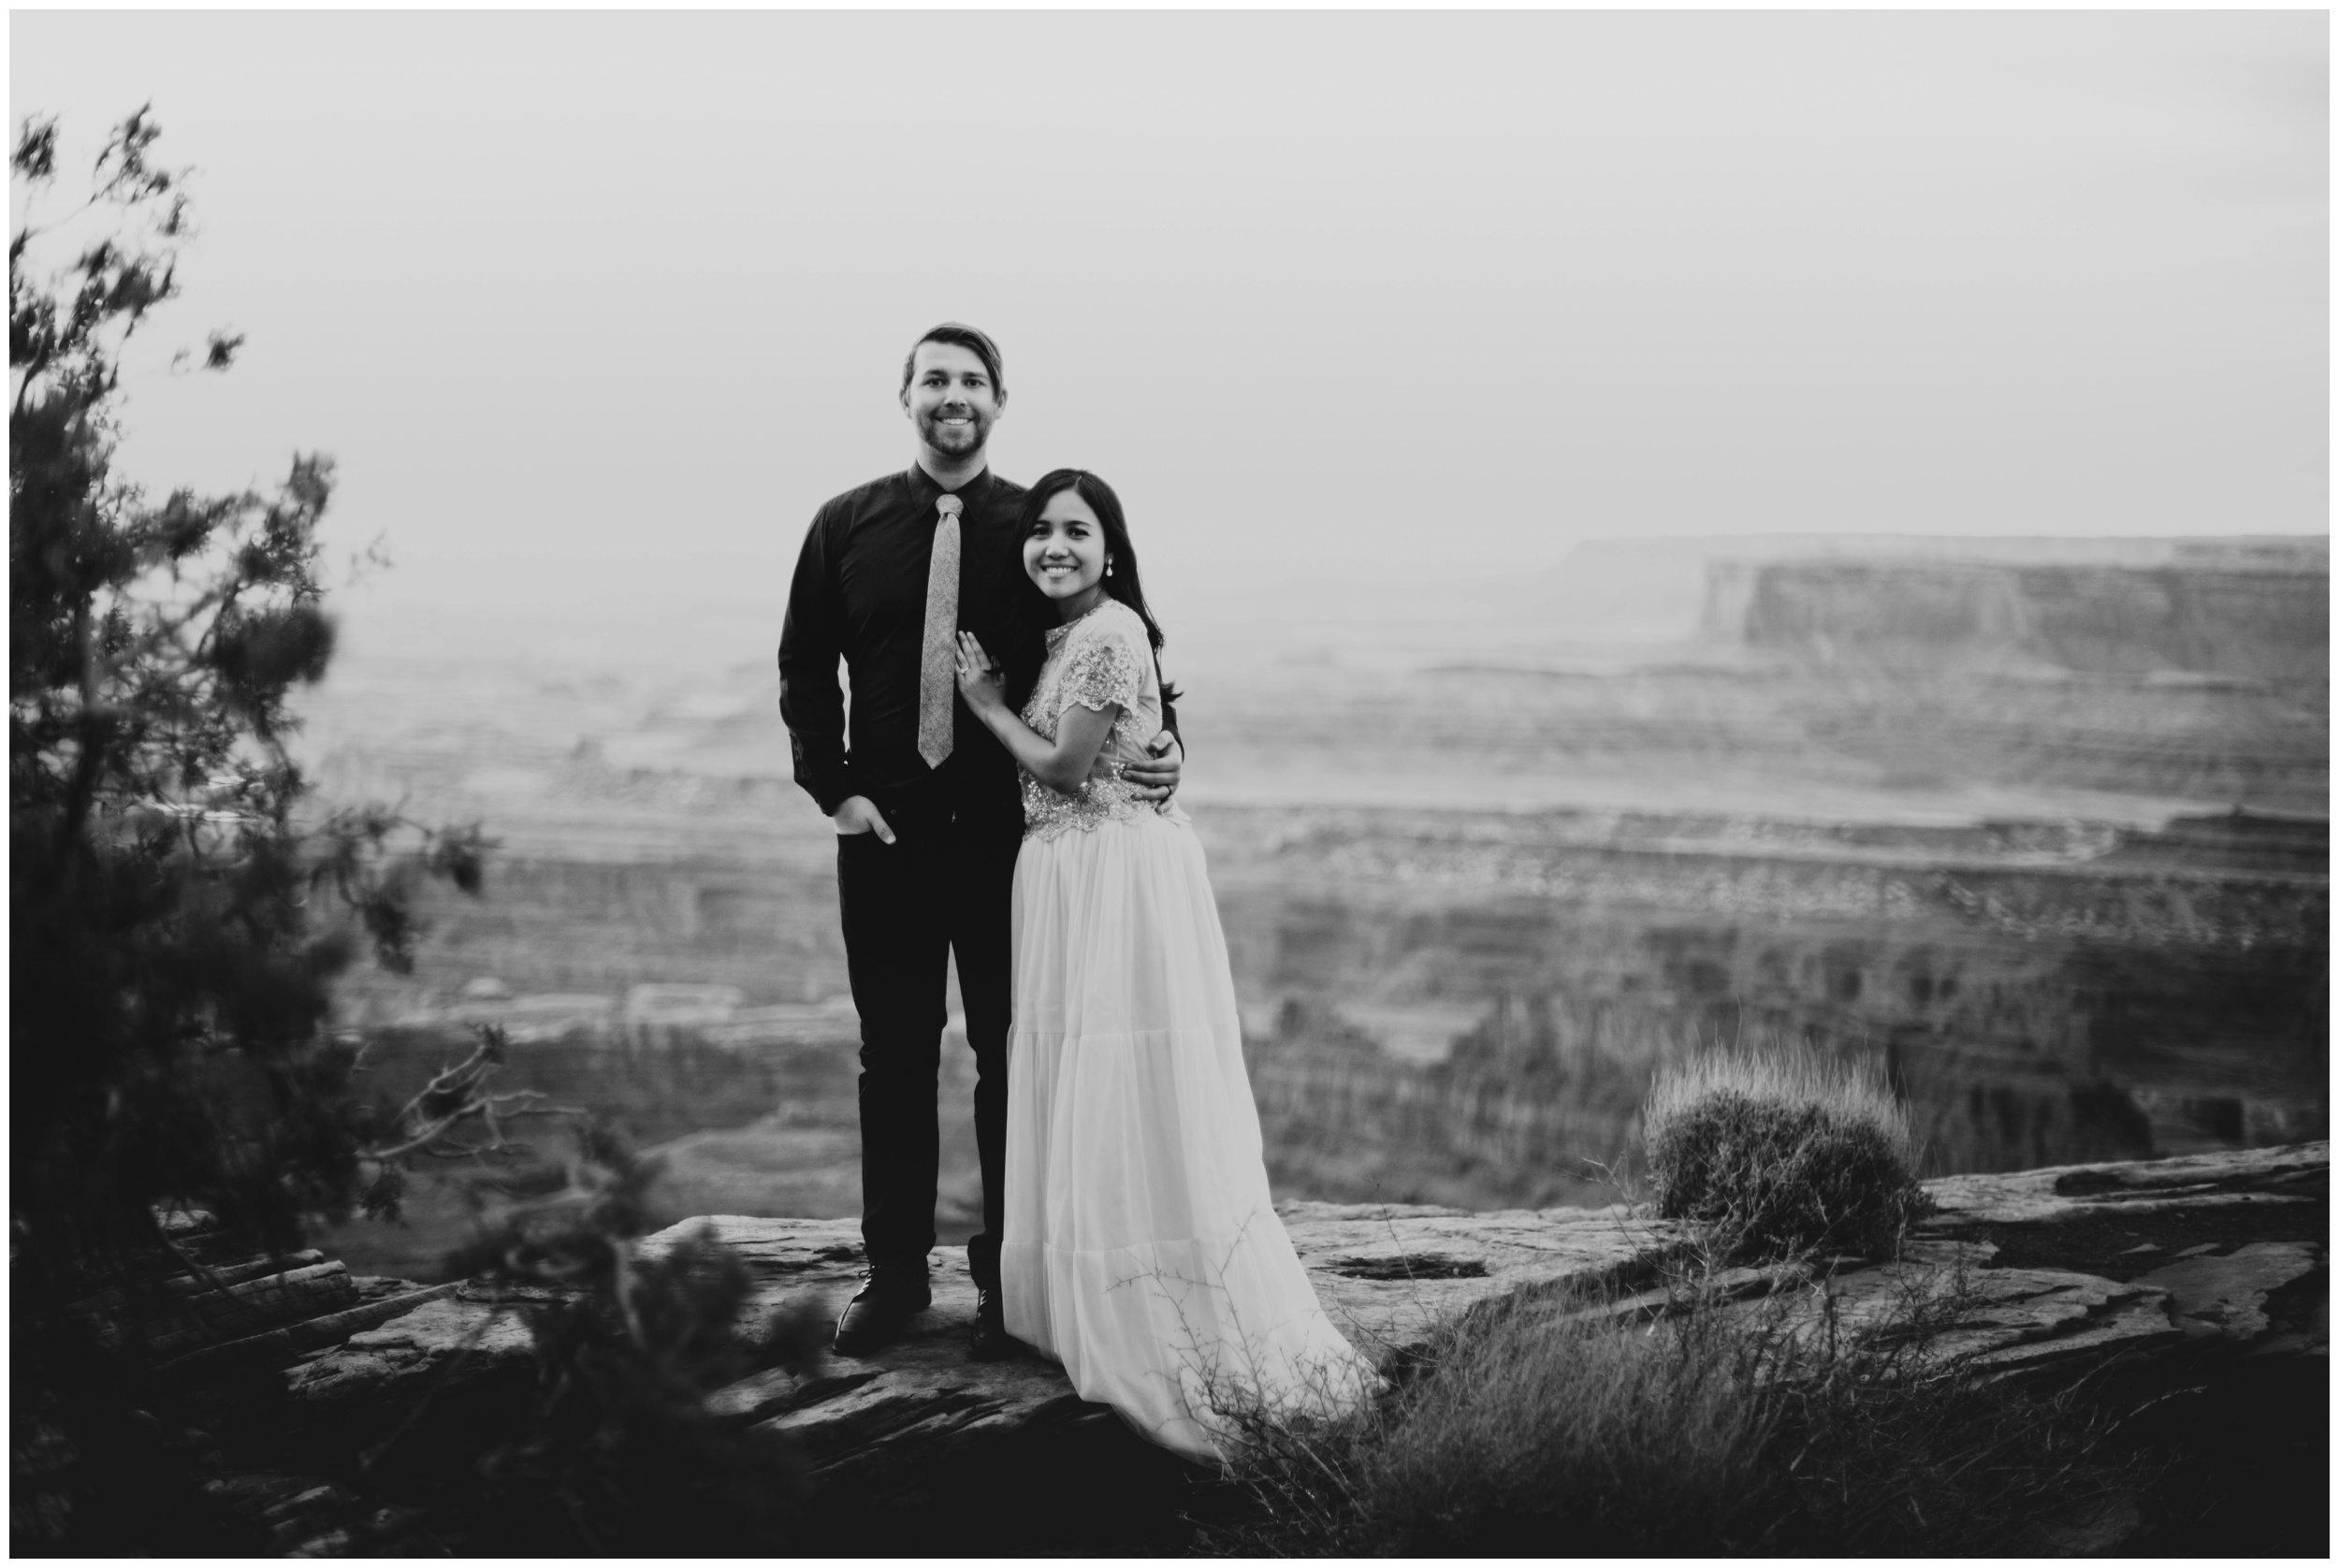 Bride and groom portraits at Dead Horse Point State Park Overlook | Elopement Photographer www.riversandroadsphotography.com